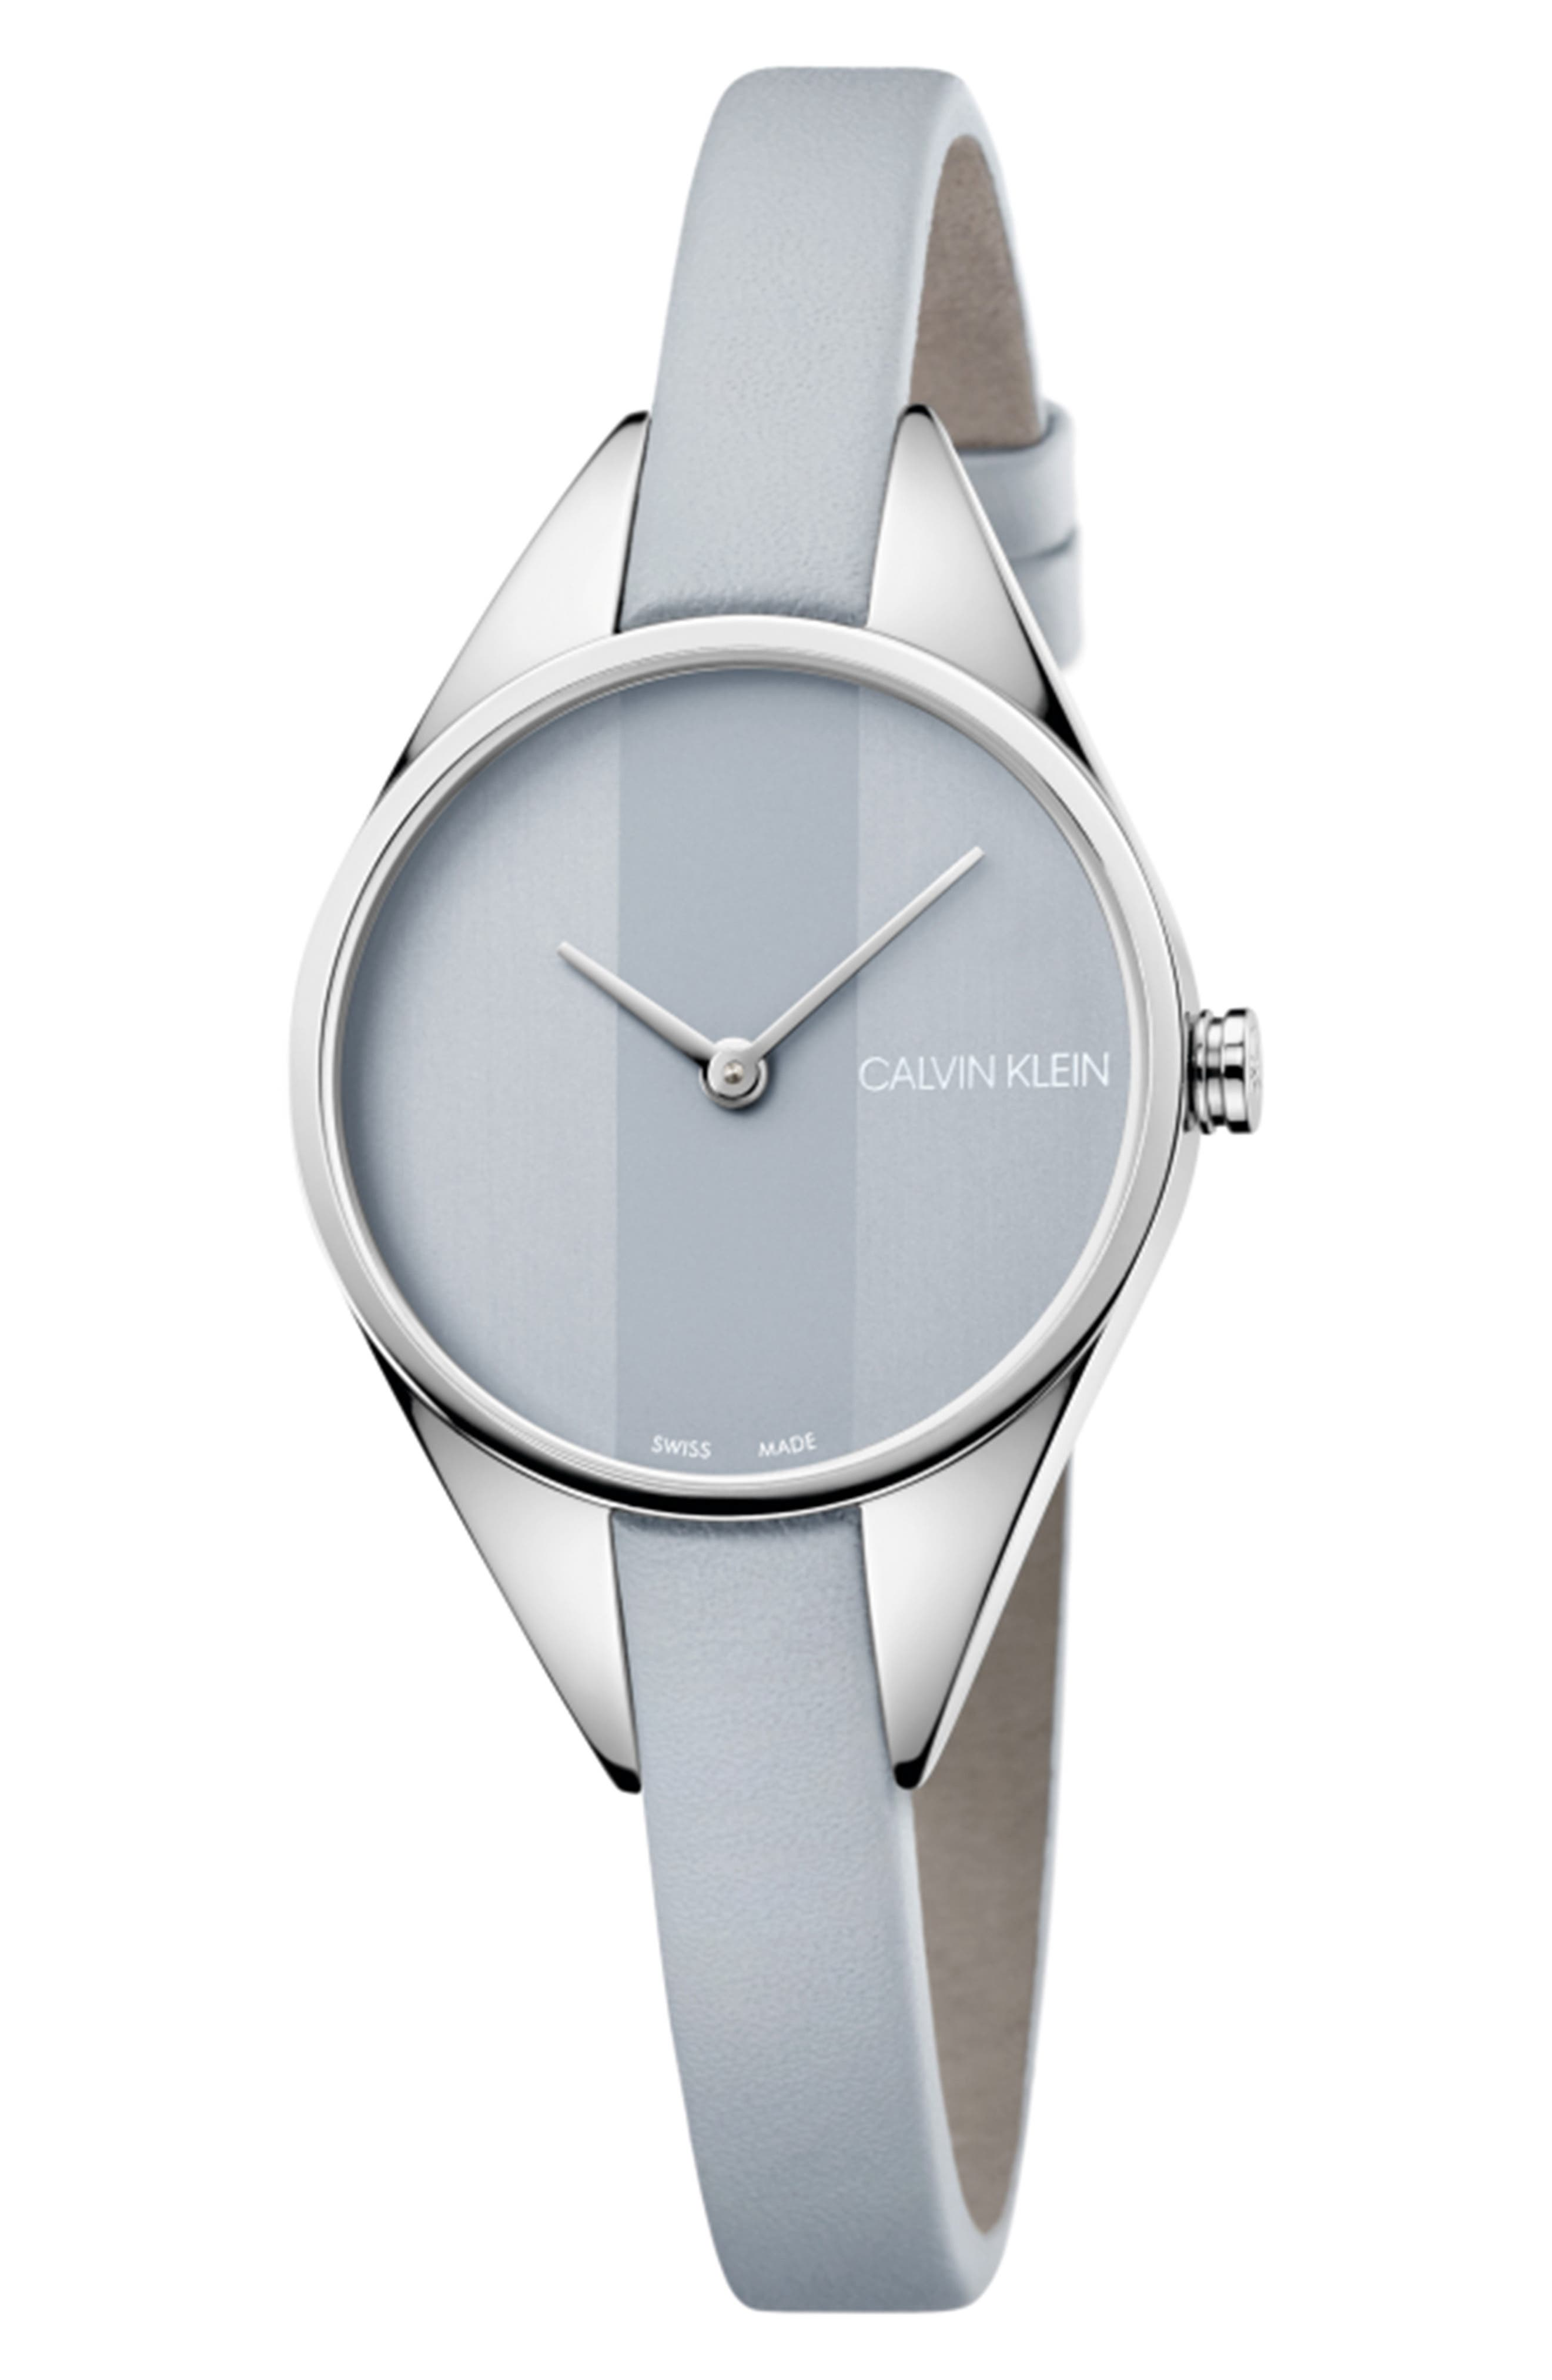 CALVIN KLEIN, Achieve Rebel Leather Band Watch, 29mm, Main thumbnail 1, color, GREY/ SILVER